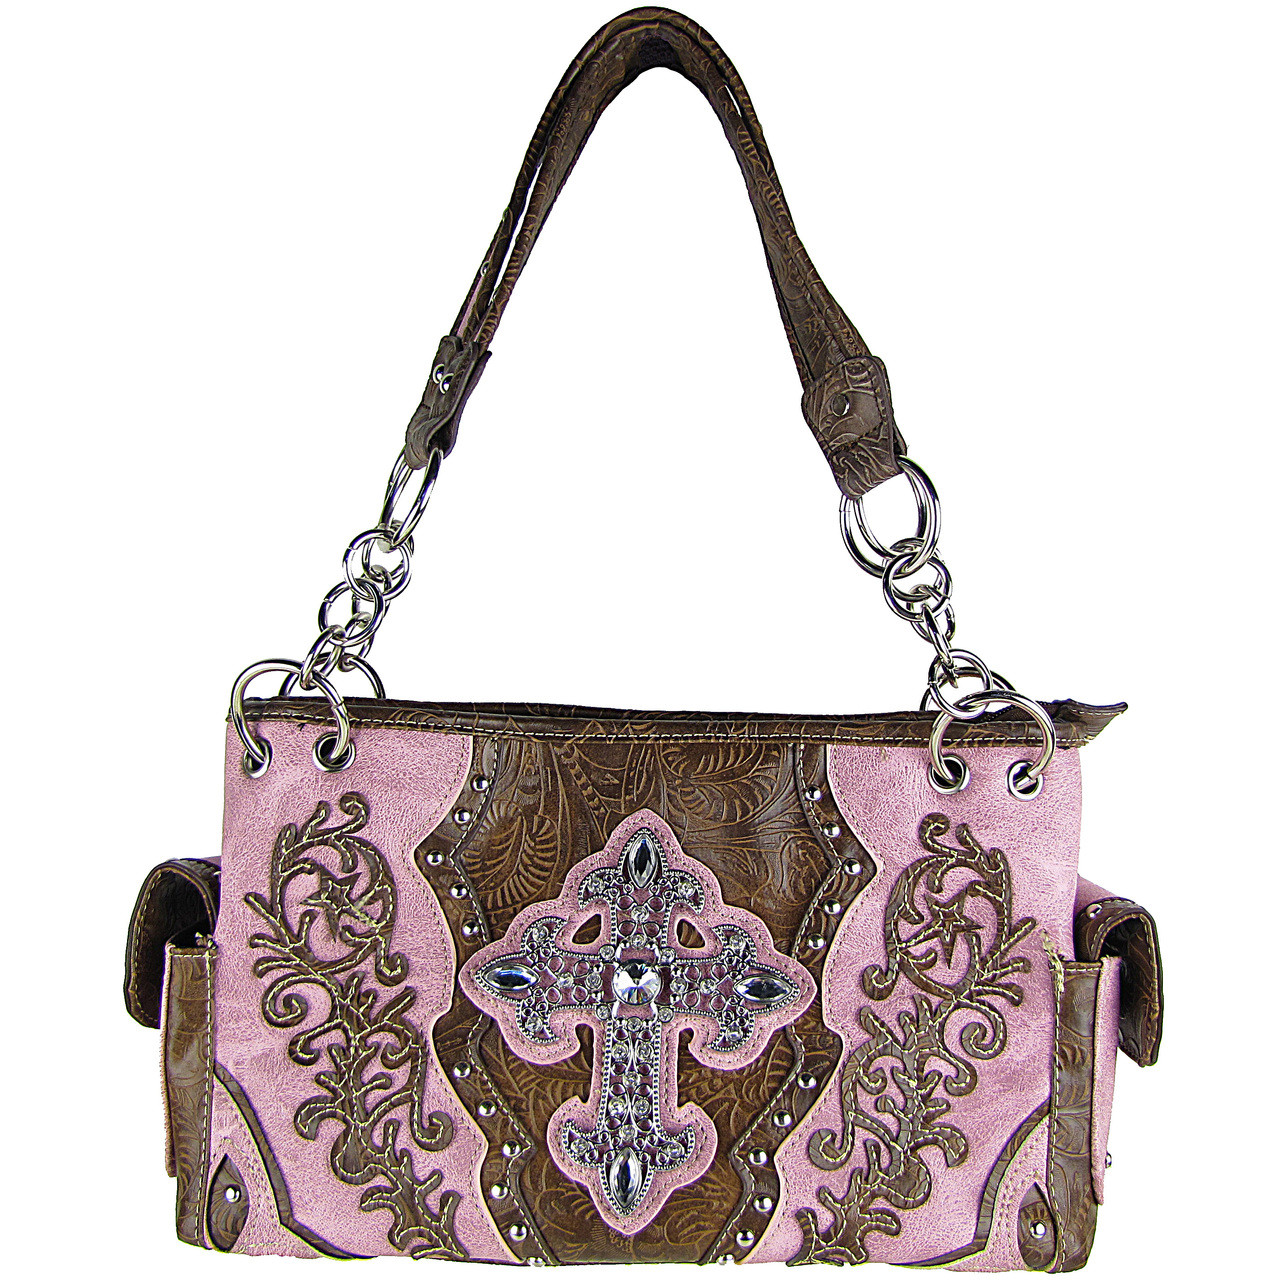 PINK RHINESTONE BUCKLE LOOK SHOULDER HANDBAG PINK RHINESTONE BUCKLE LOOK SHOULDER HANDBAG HB1-63LCRPNK